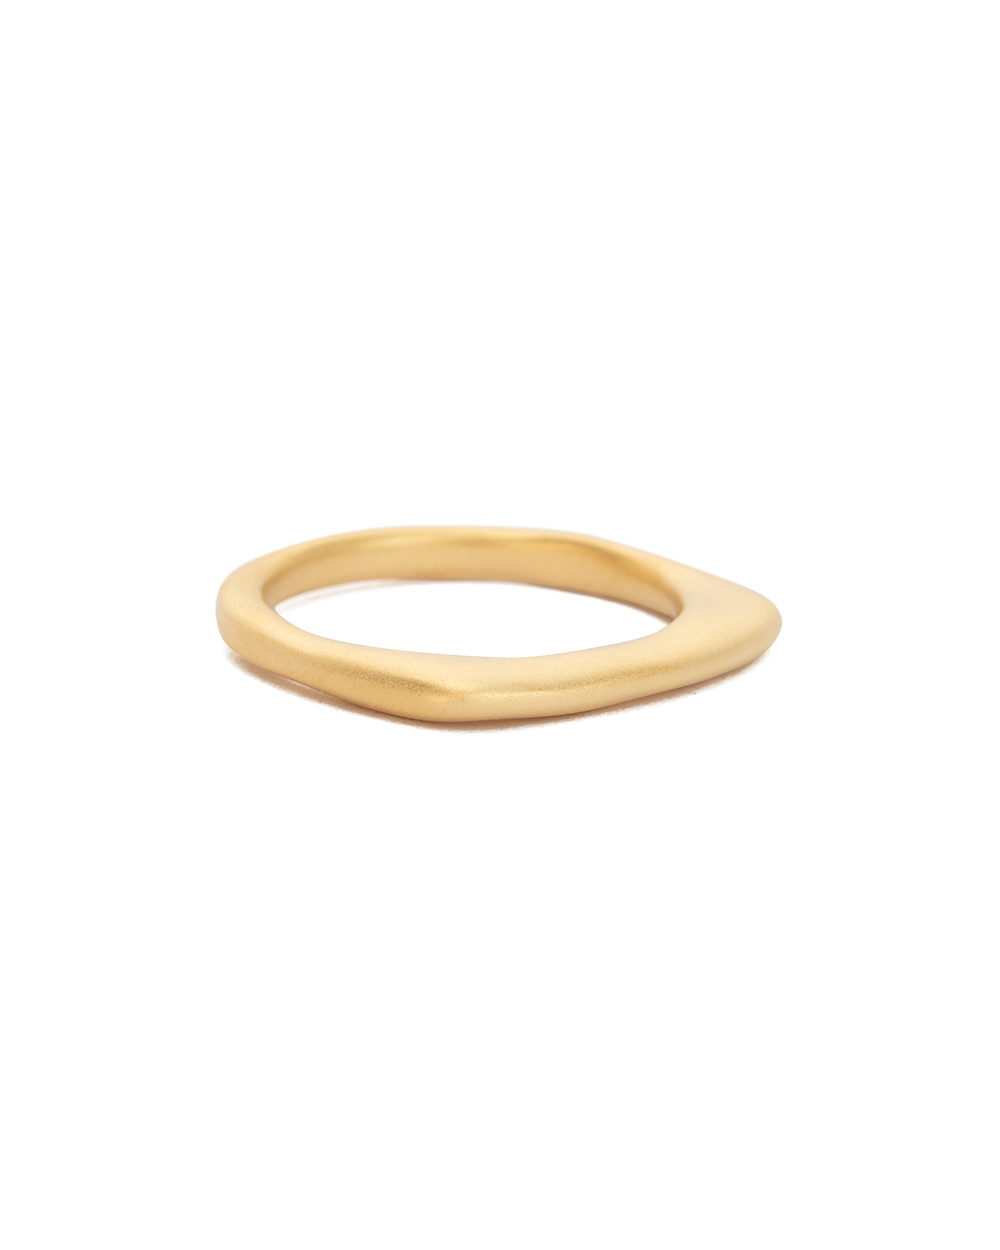 DAYBREAK STACKING RING (18K-GOLD-PLATED) - SIDE